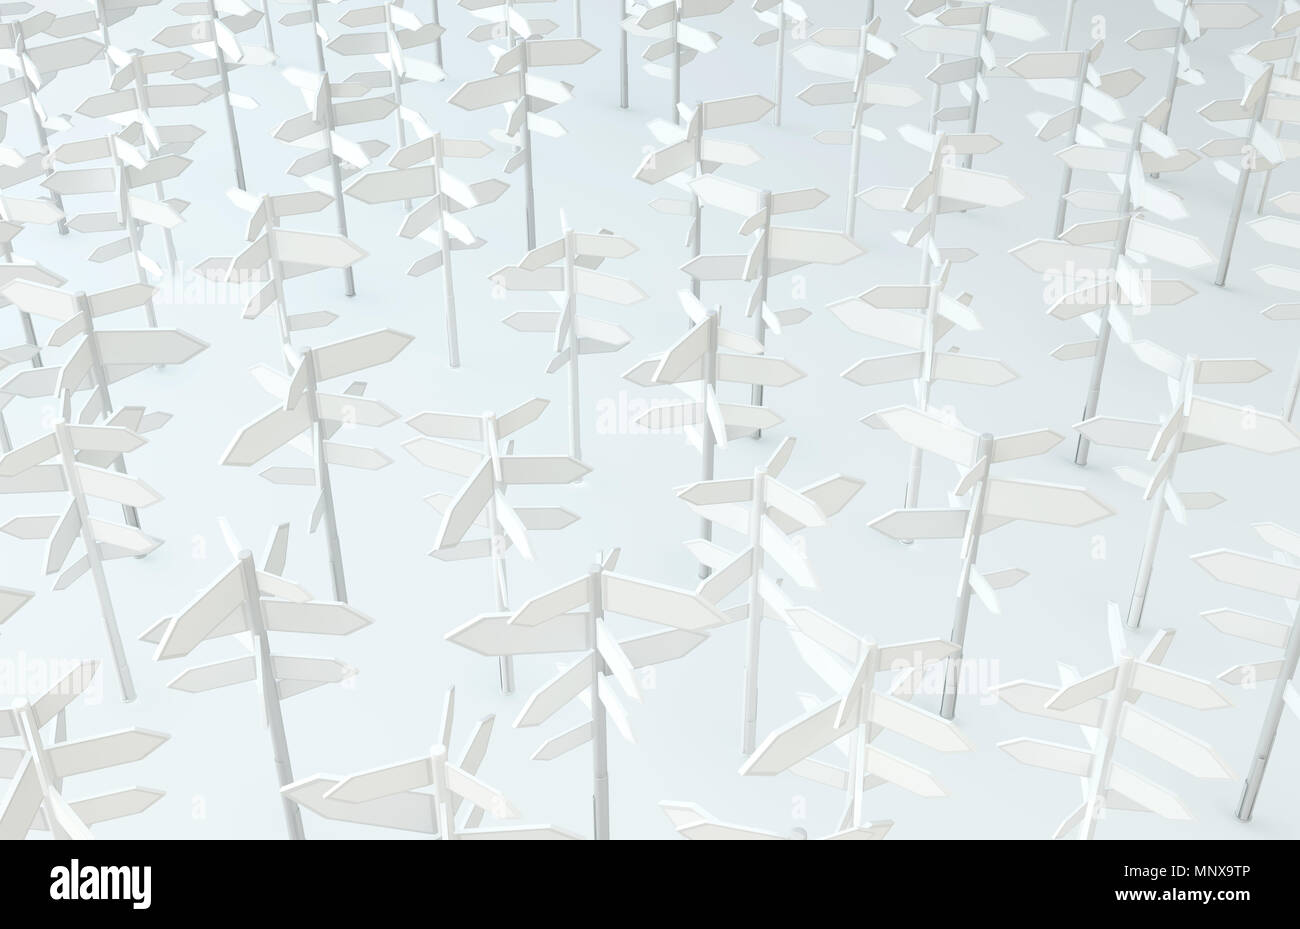 Panneaux de direction groupe fond blanc, 3d illustration, horizontal Photo Stock